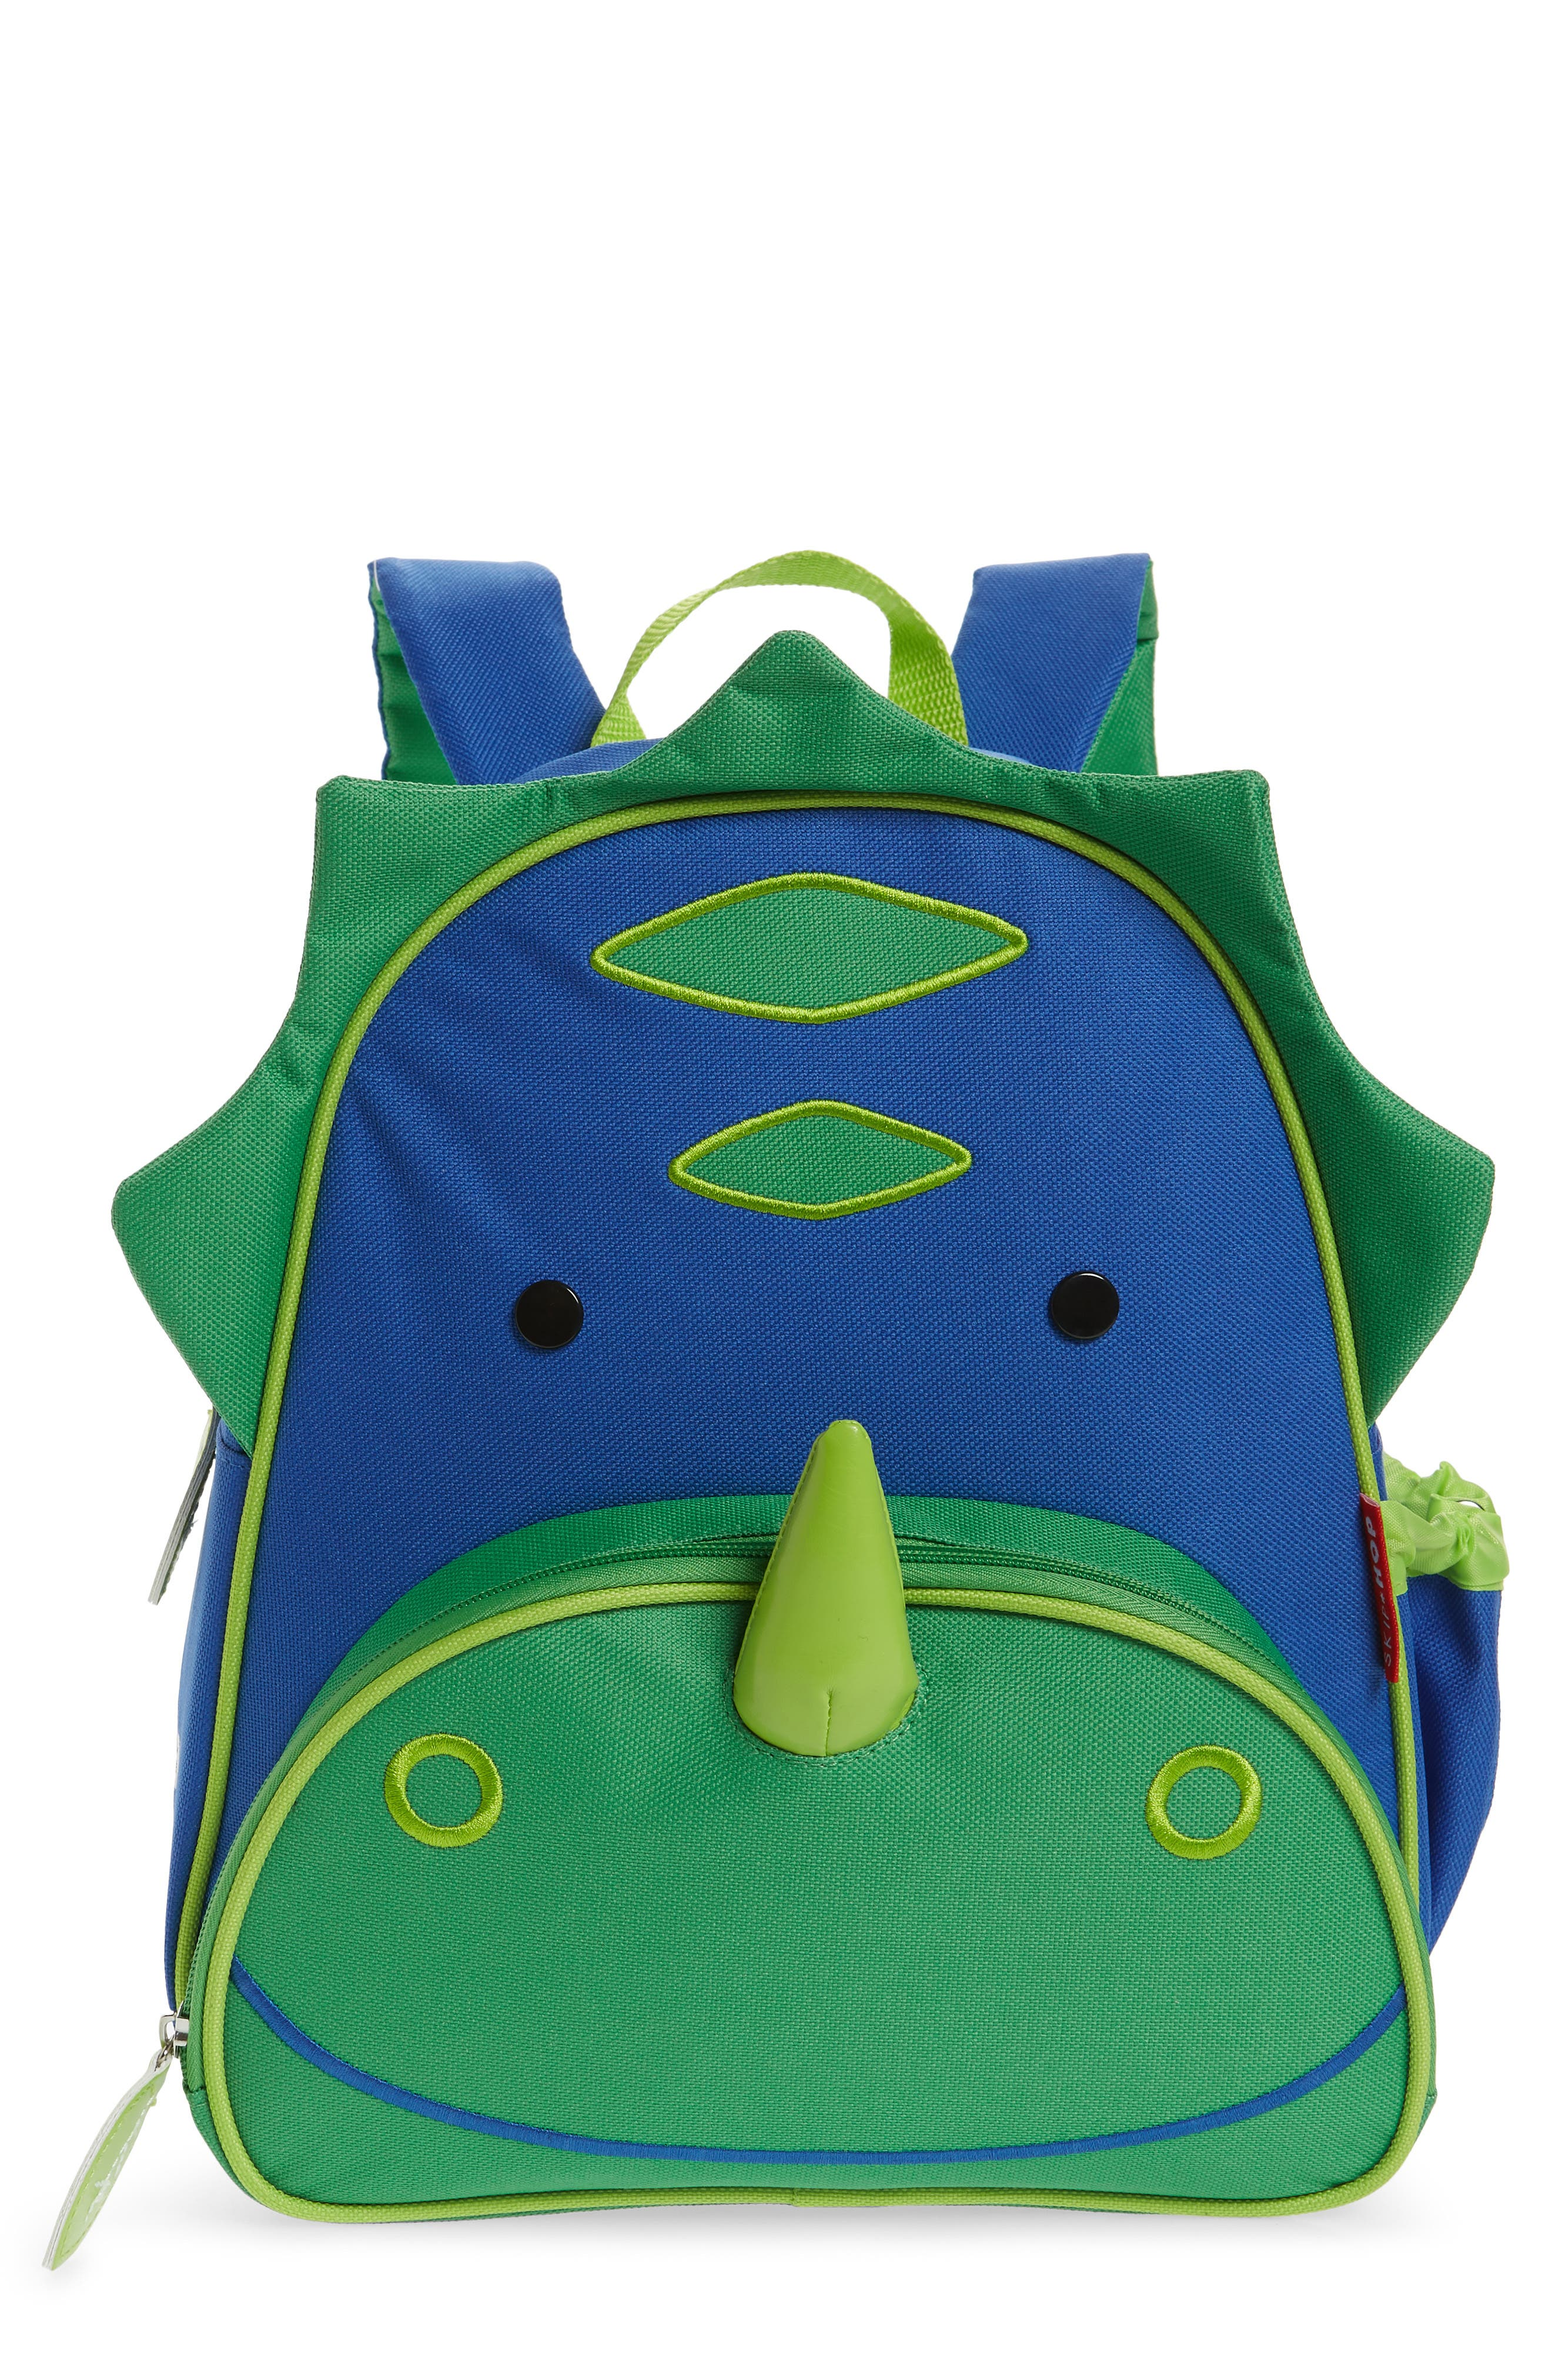 Zoo Pack Backpack,                             Main thumbnail 1, color,                             Green/ Blue